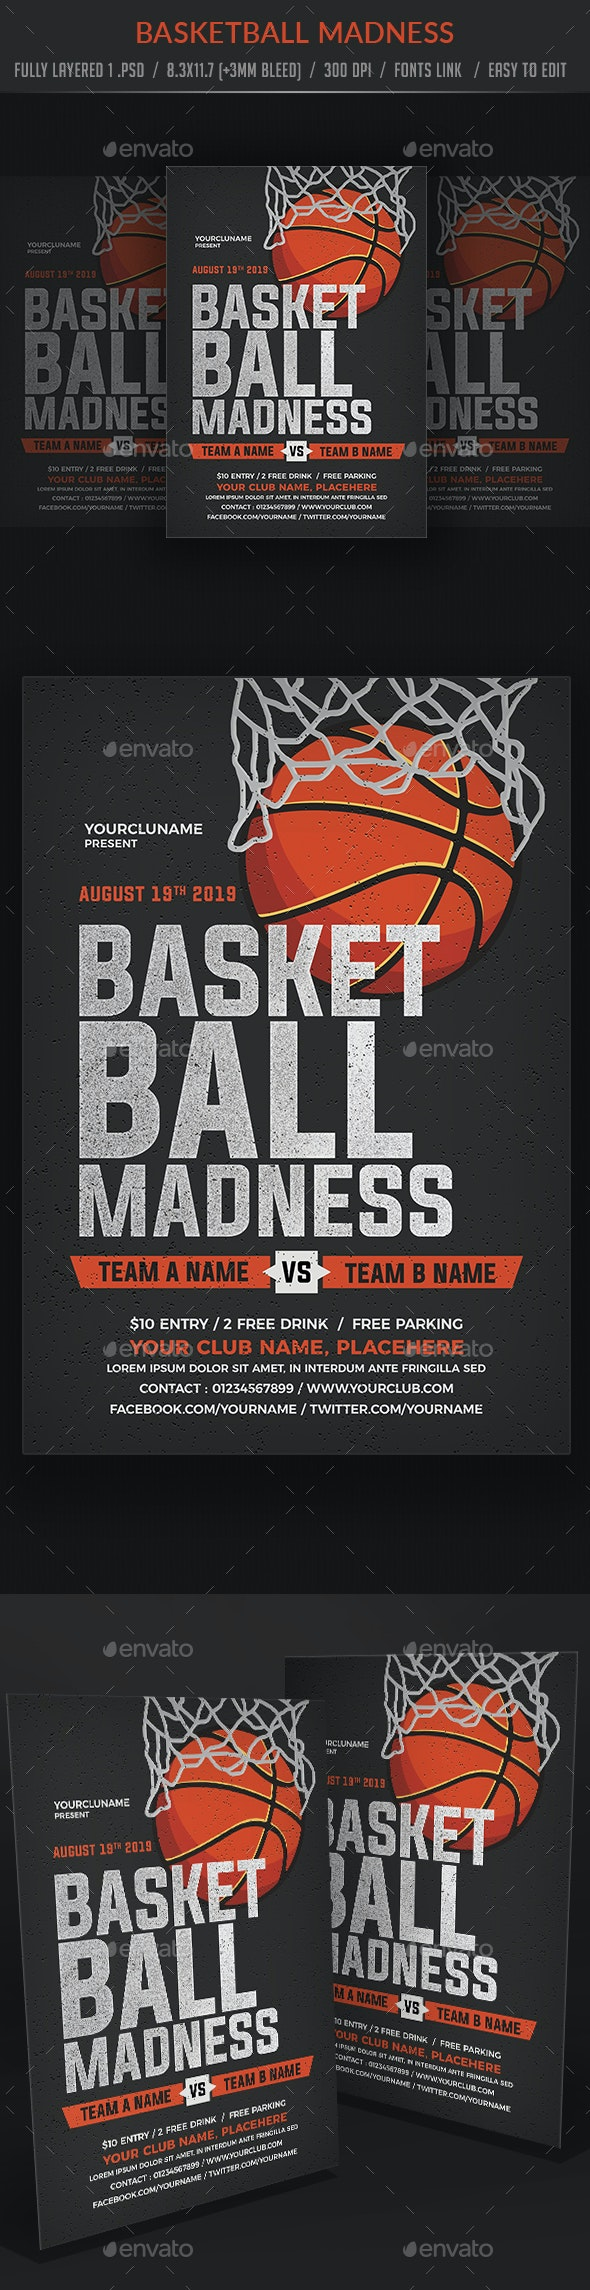 Basketball Madness Flyer Poster - Sports Events